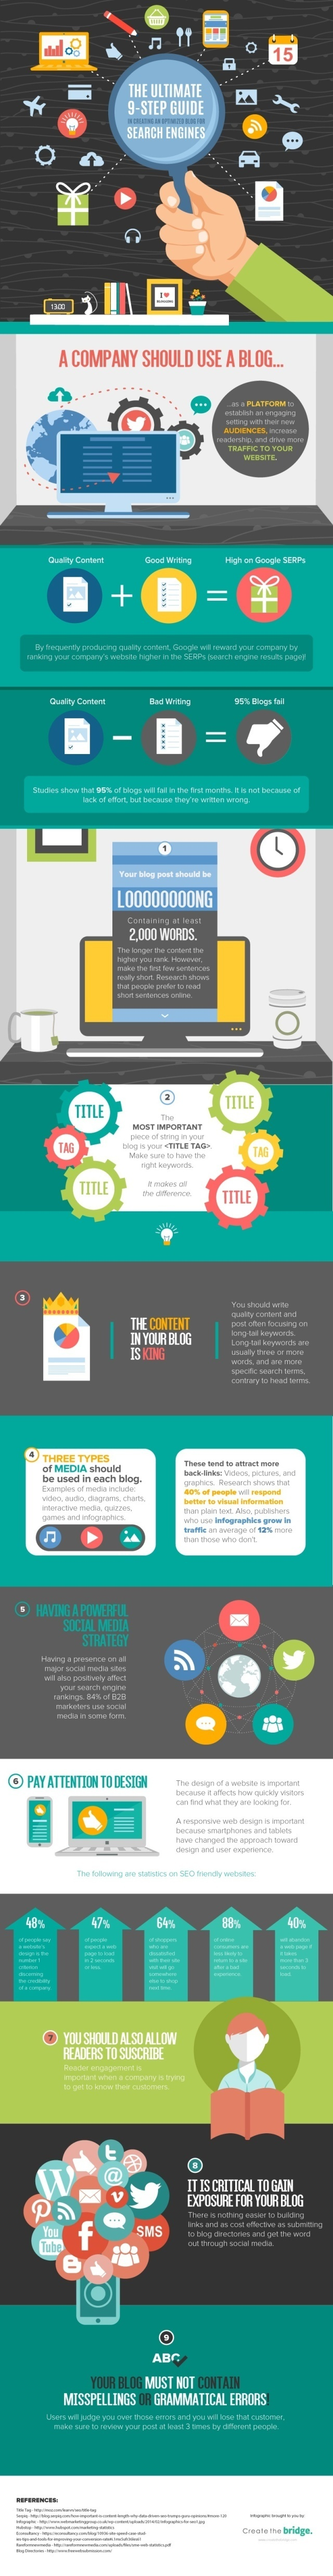 9-Step-Guide-To-SEO-Infographic